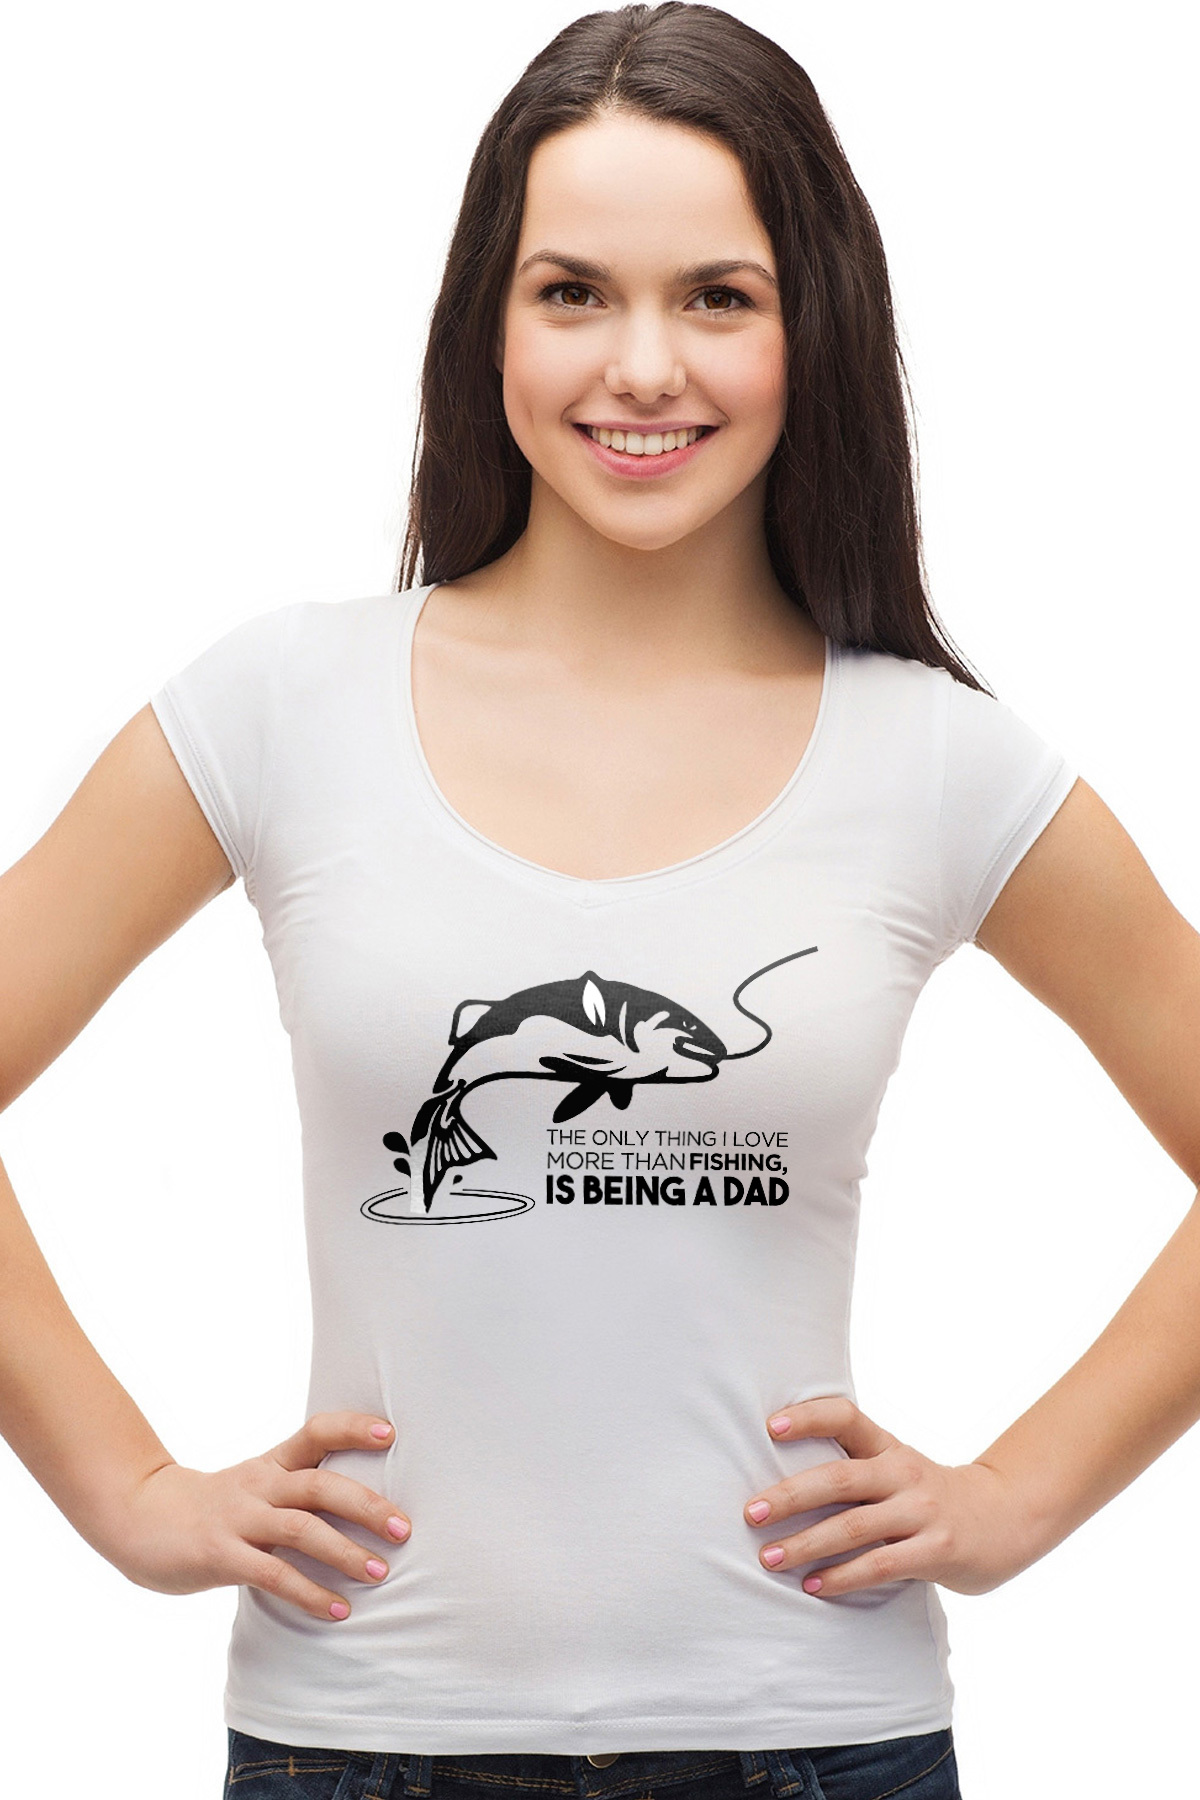 40b1430f The only thing I love more than fishing, is being a dad - funny fishing t- shirt